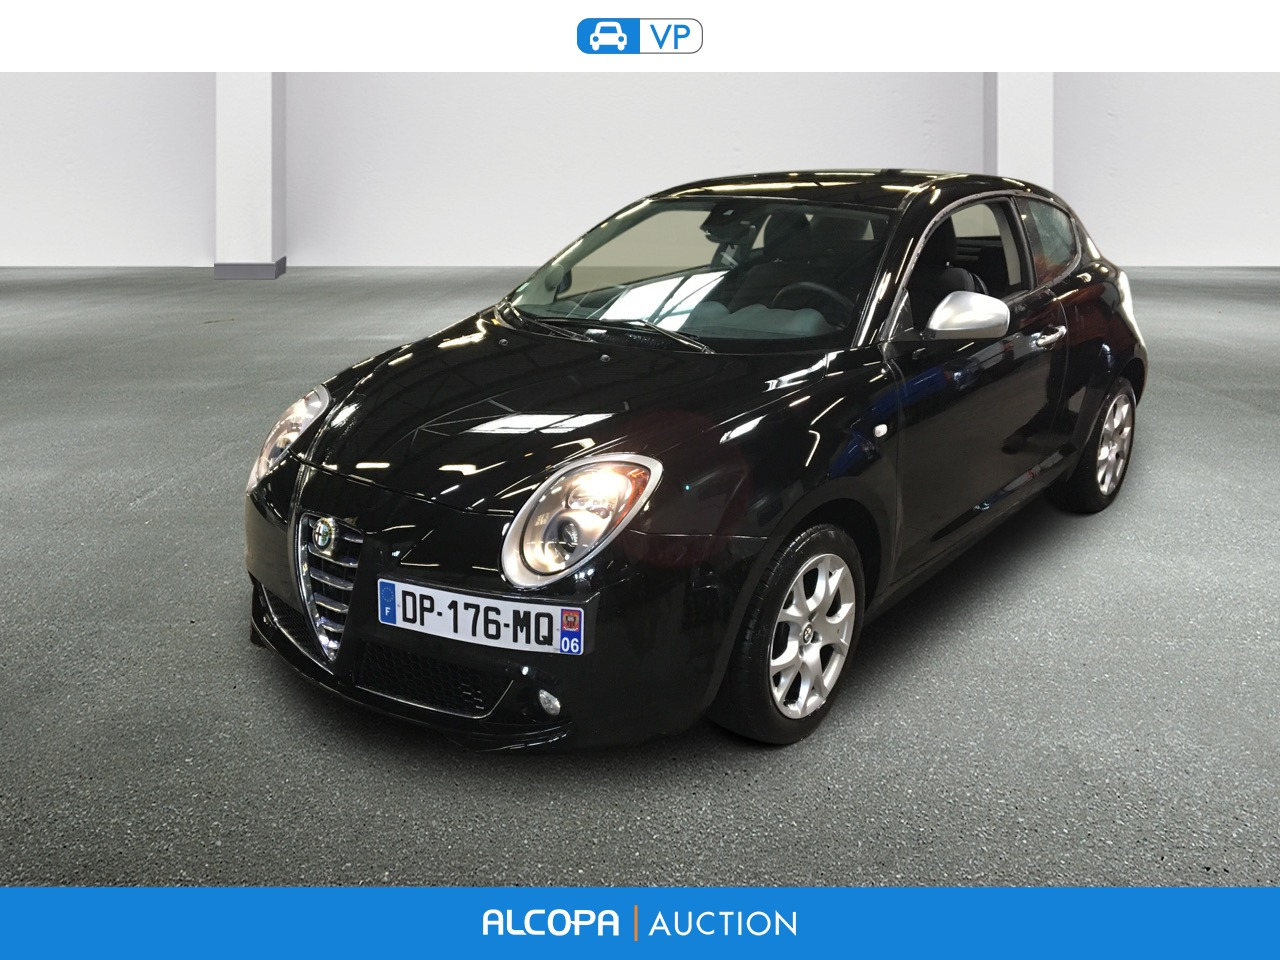 alfa romeo mito 05 2013 12 2016 mito 1 4 mpi 78 start stop edizione alcopa auction. Black Bedroom Furniture Sets. Home Design Ideas